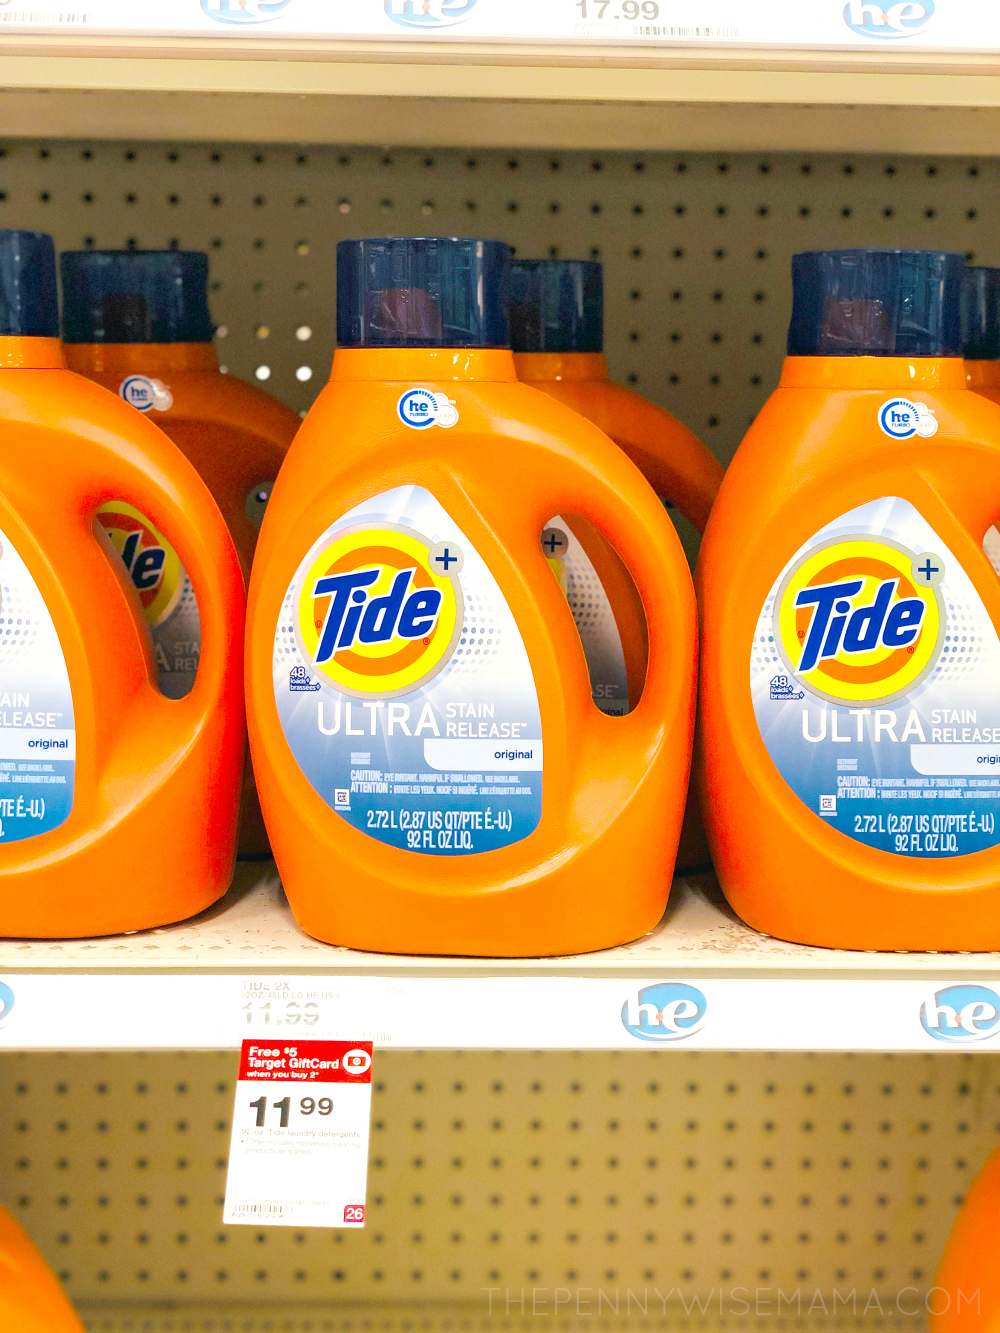 Tide Liquid Detergent Coupon - Save at Target